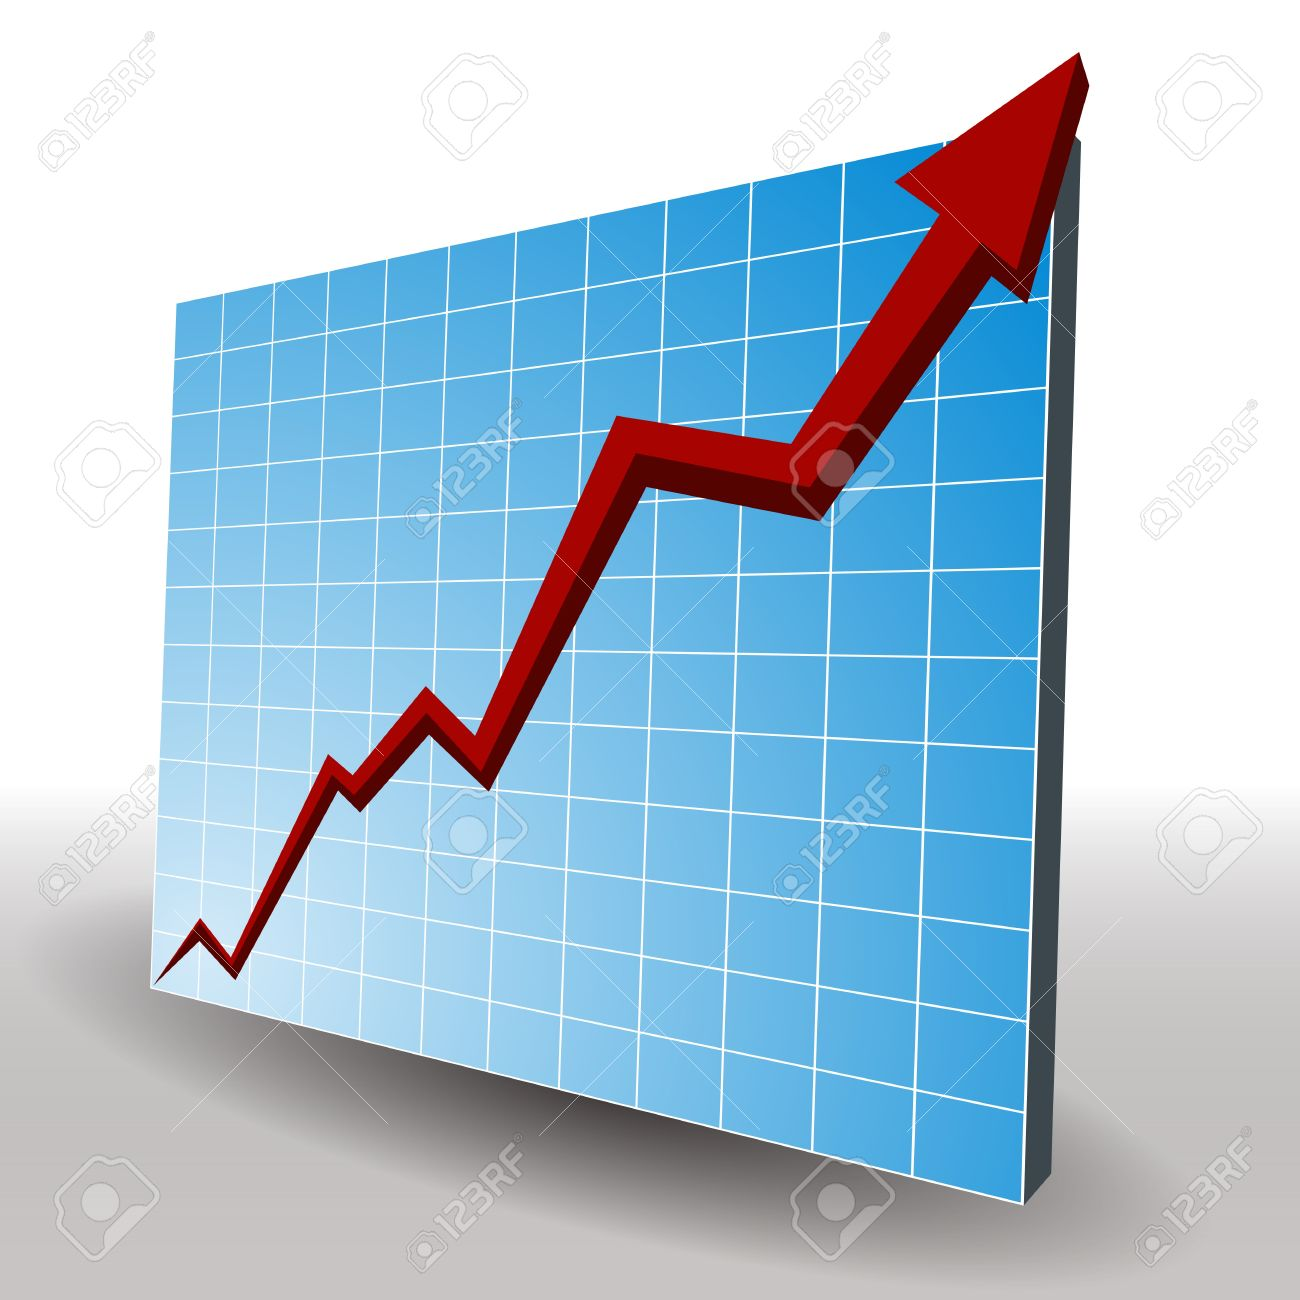 an image of a 3d profit line chart. royalty free cliparts, vectors